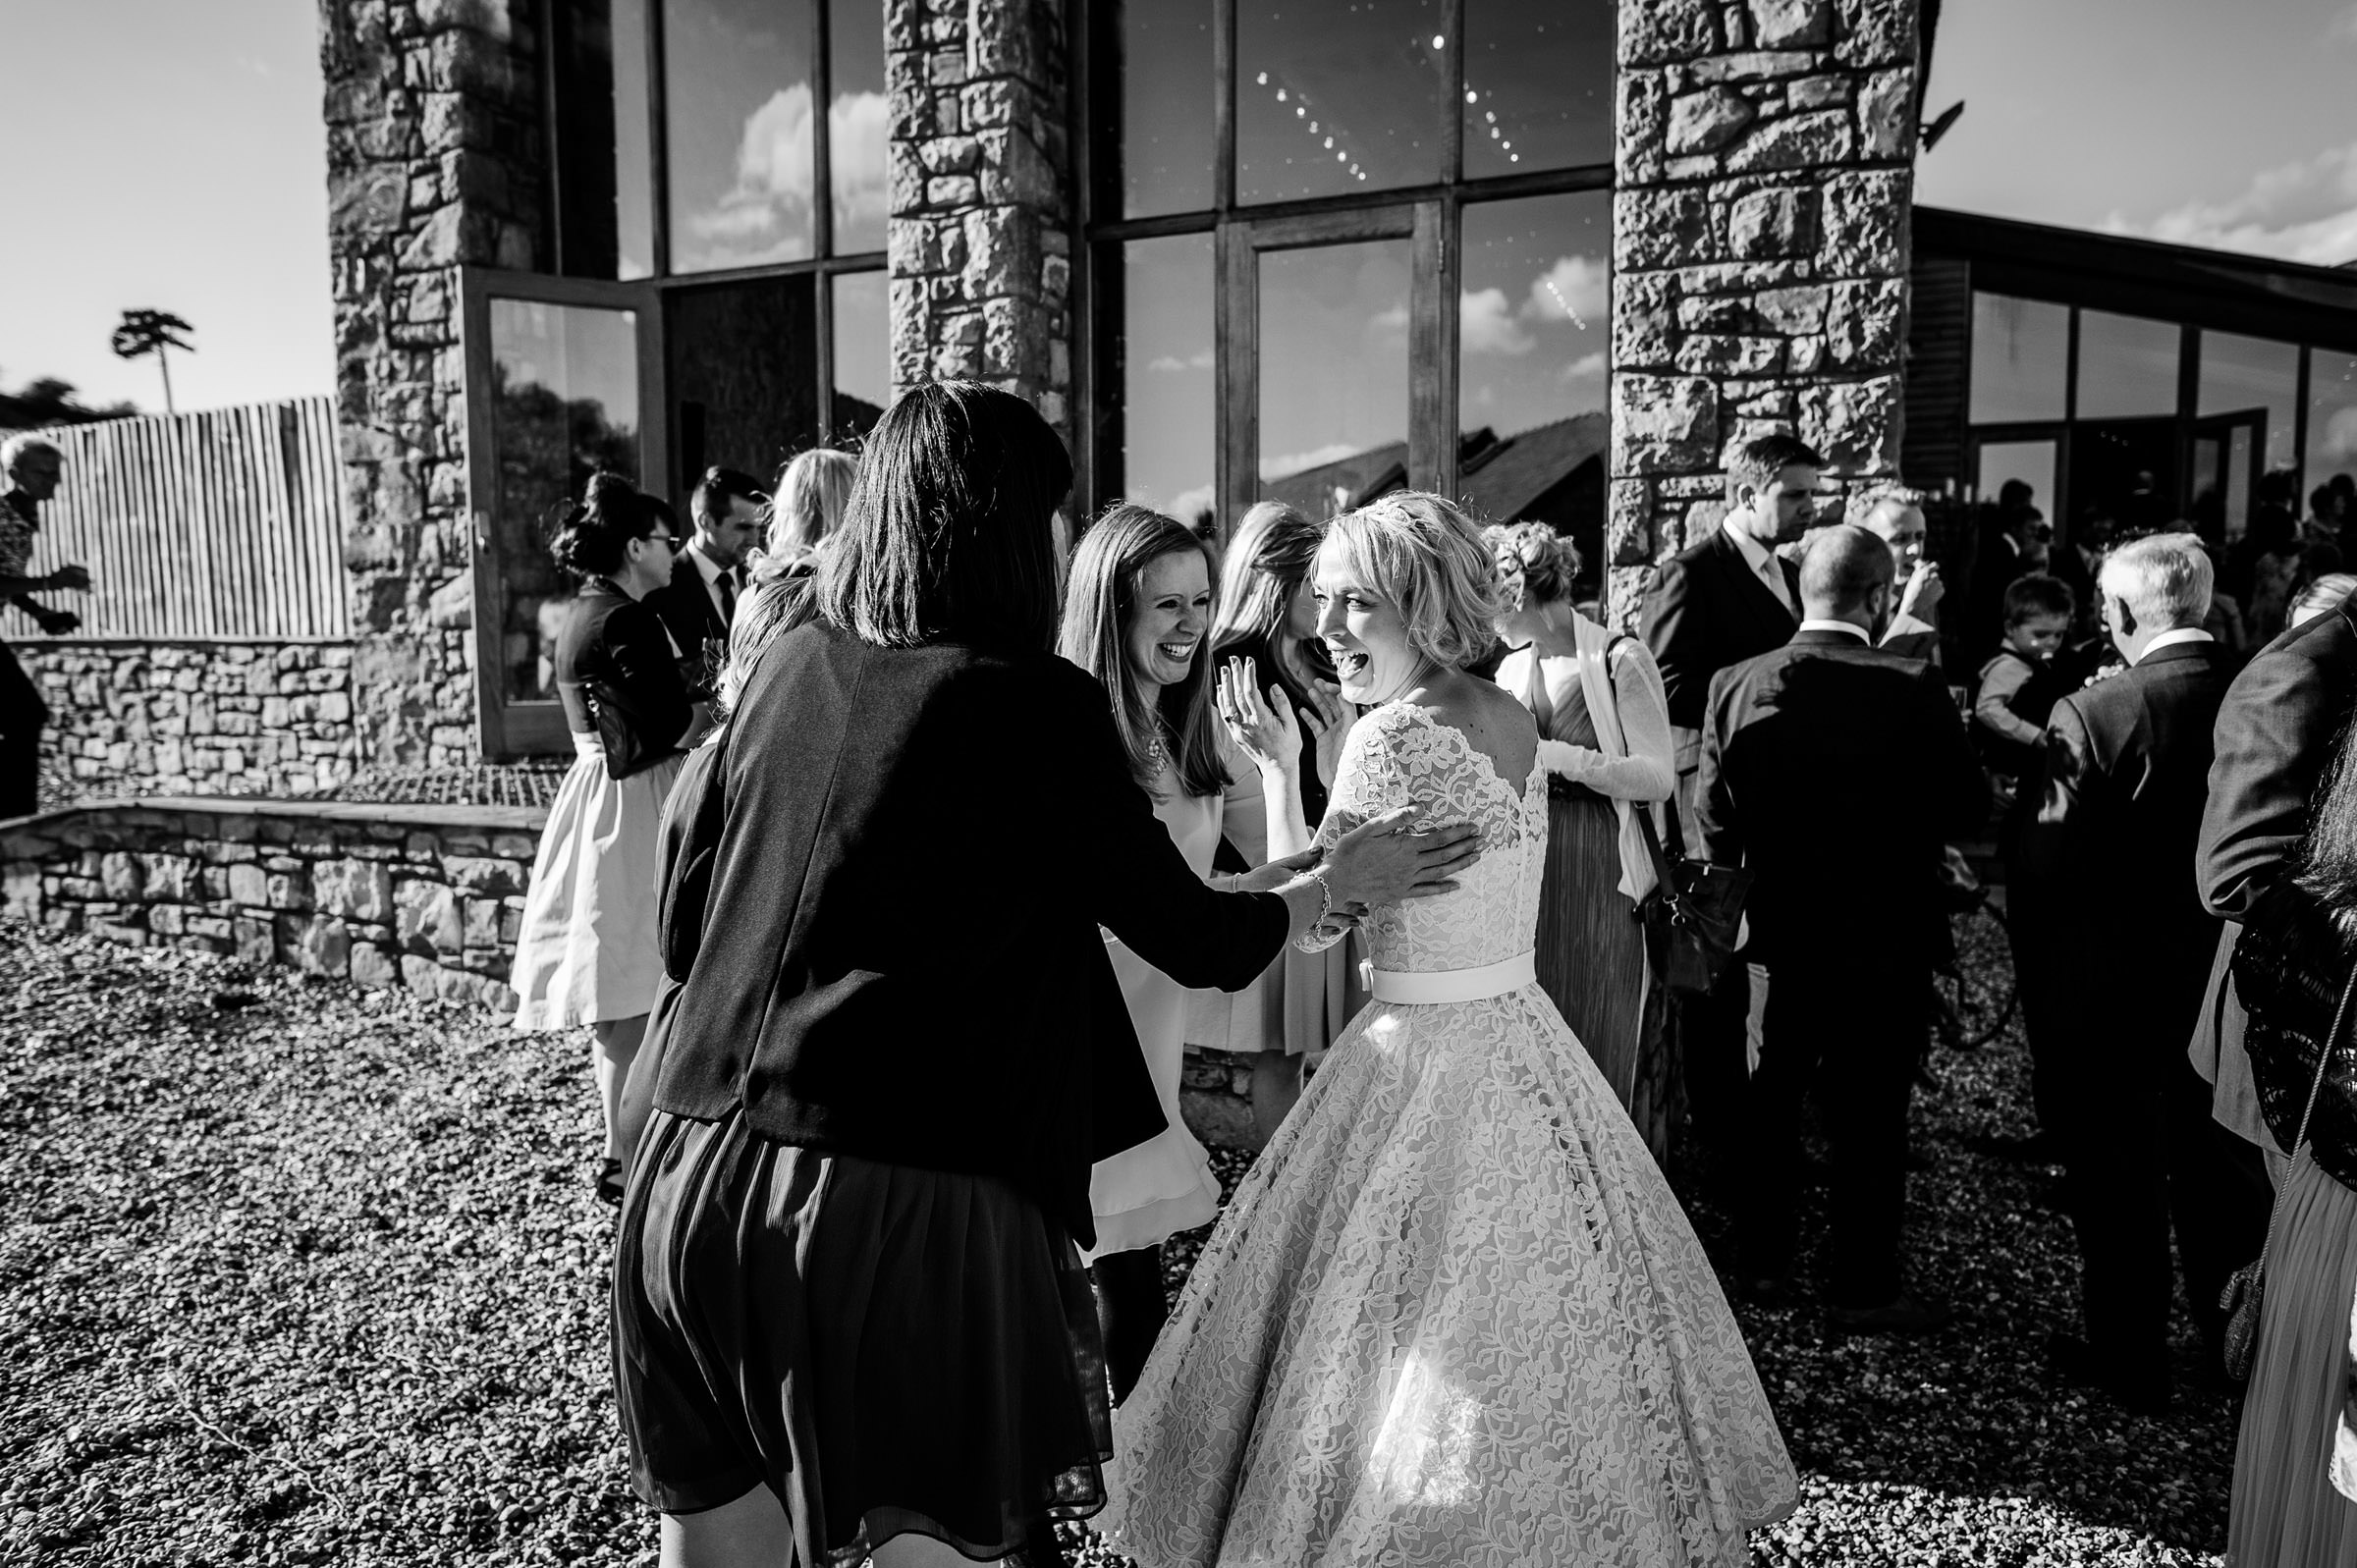 Reportage Wedding Photography South Wales 039.jpg